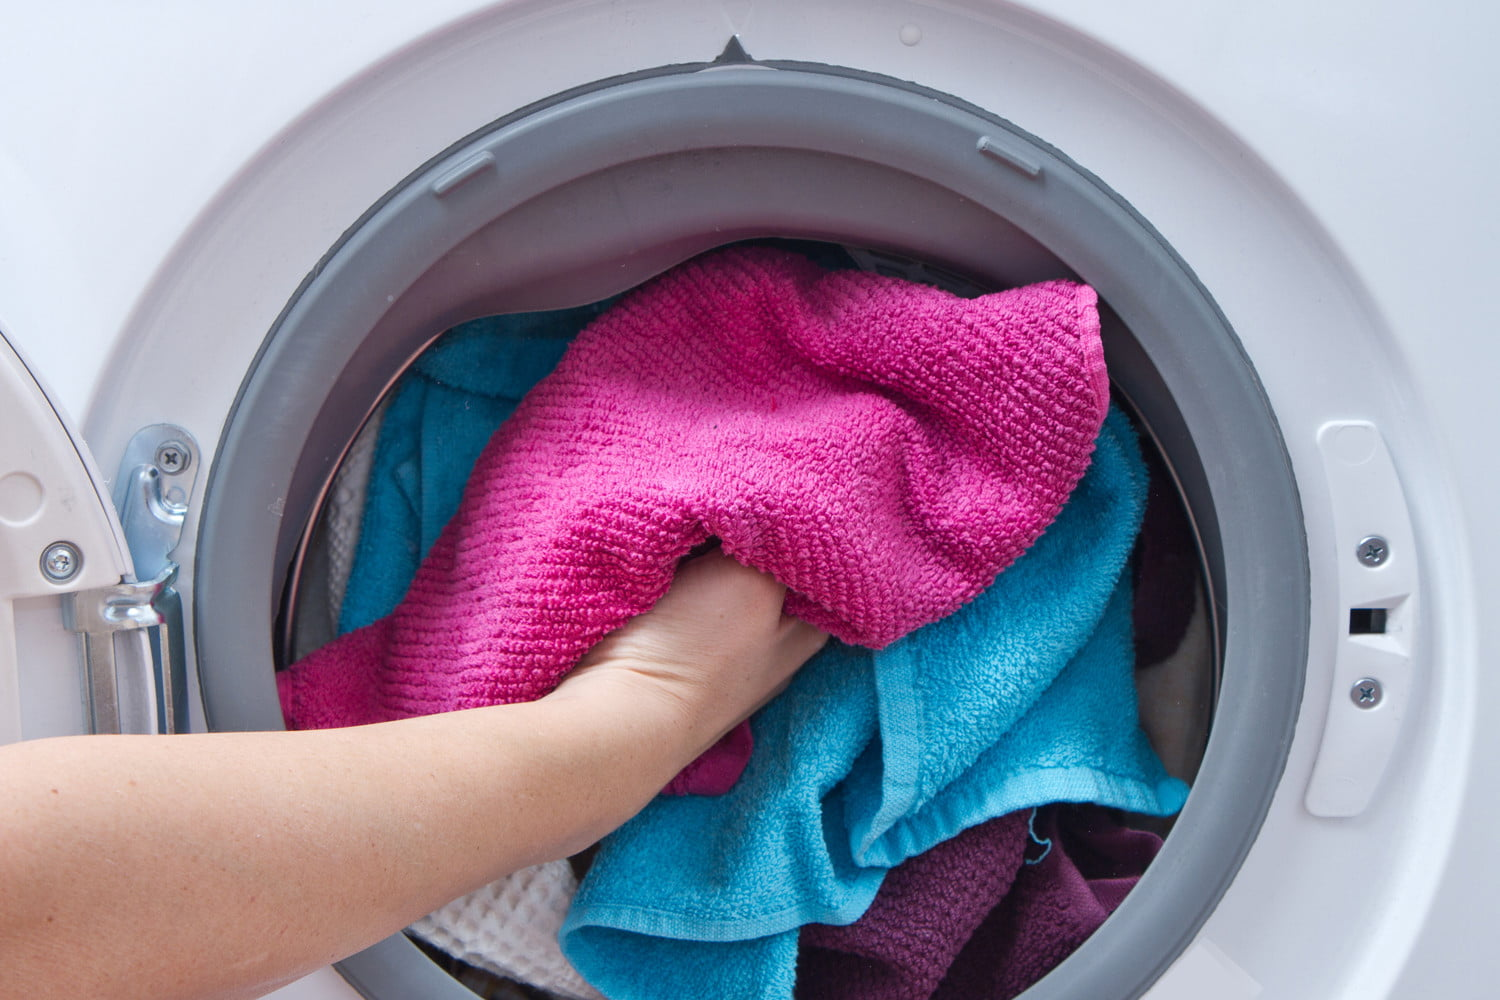 How To Clean A Washing Machine | Digital Trends